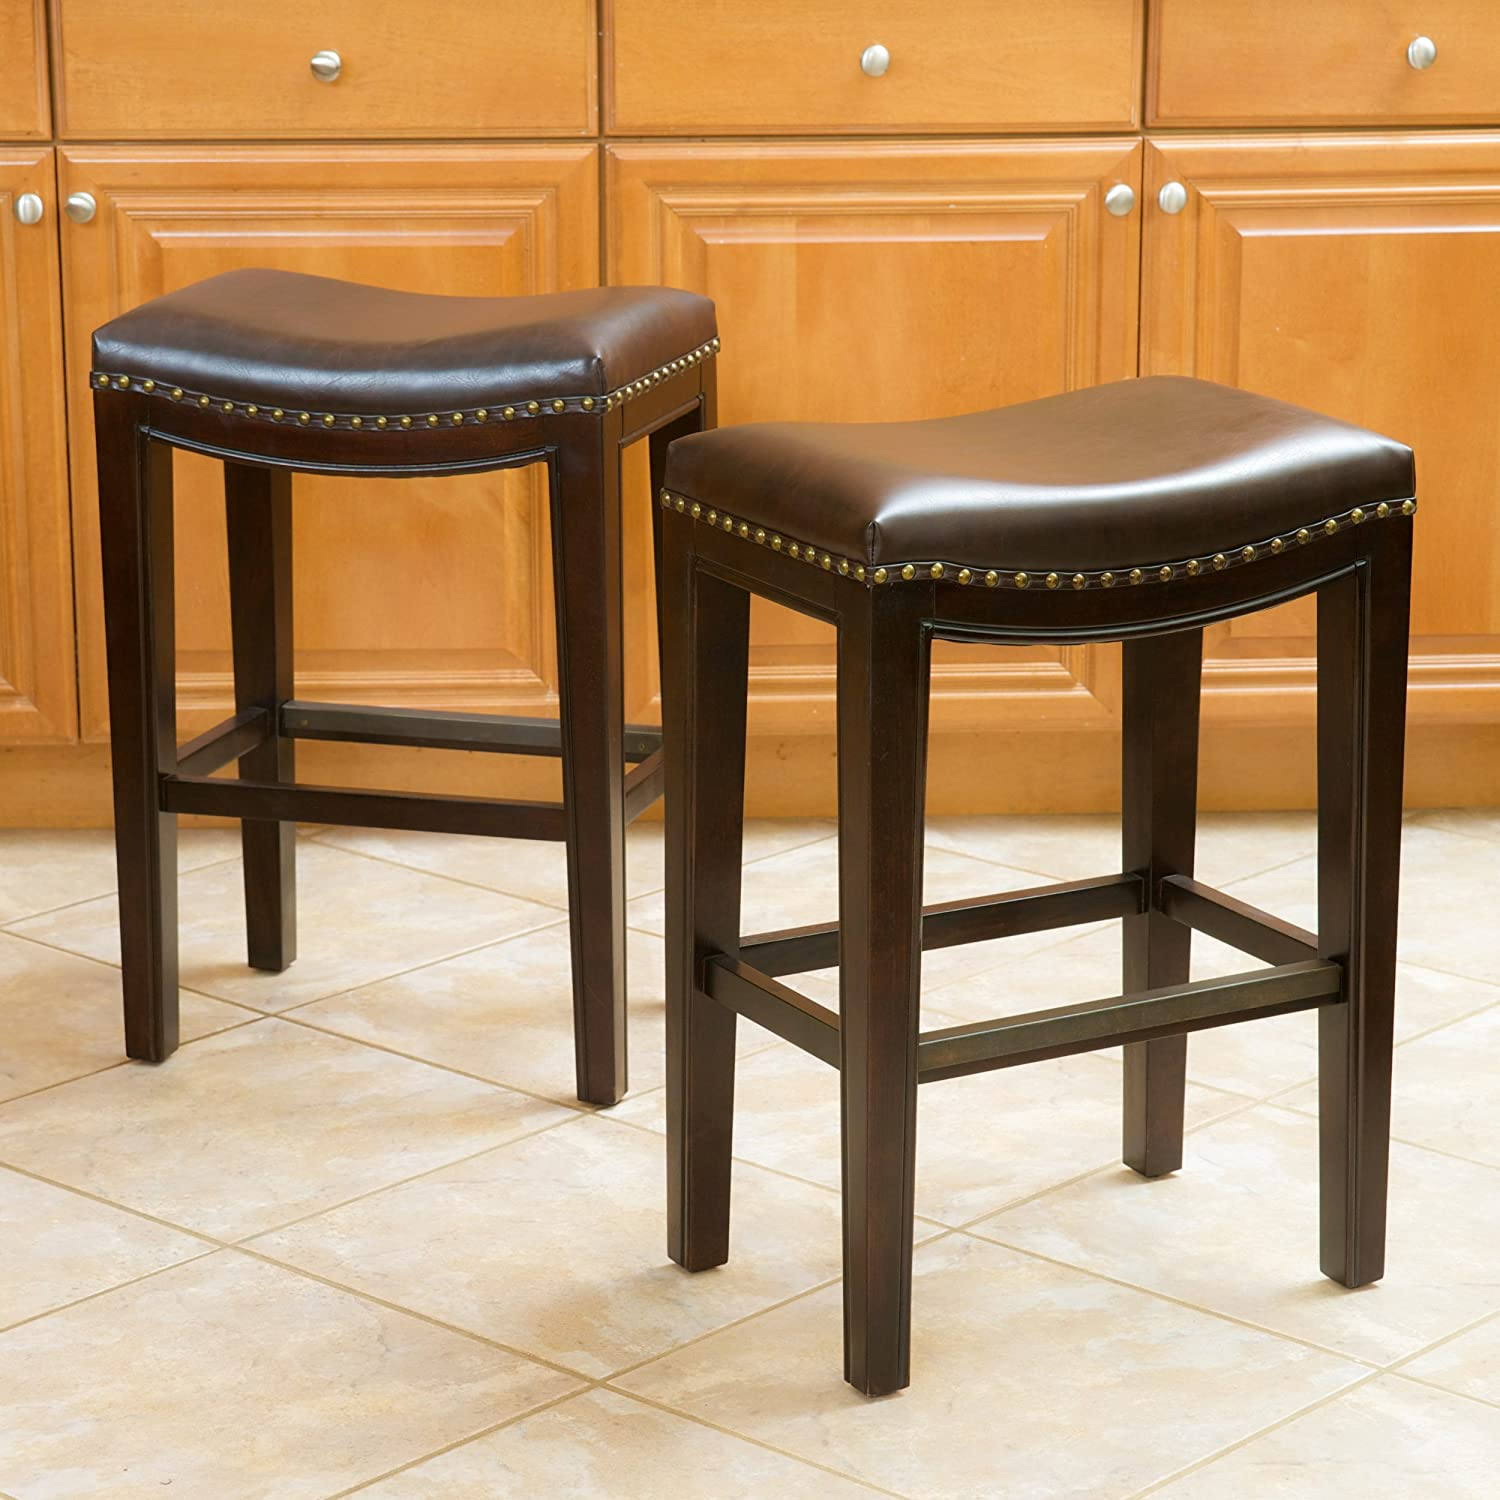 Kitchen island stools canada - Amazon Com Best Selling Aster Backless Counter Stools Brown Set Of 2 Kitchen Dining